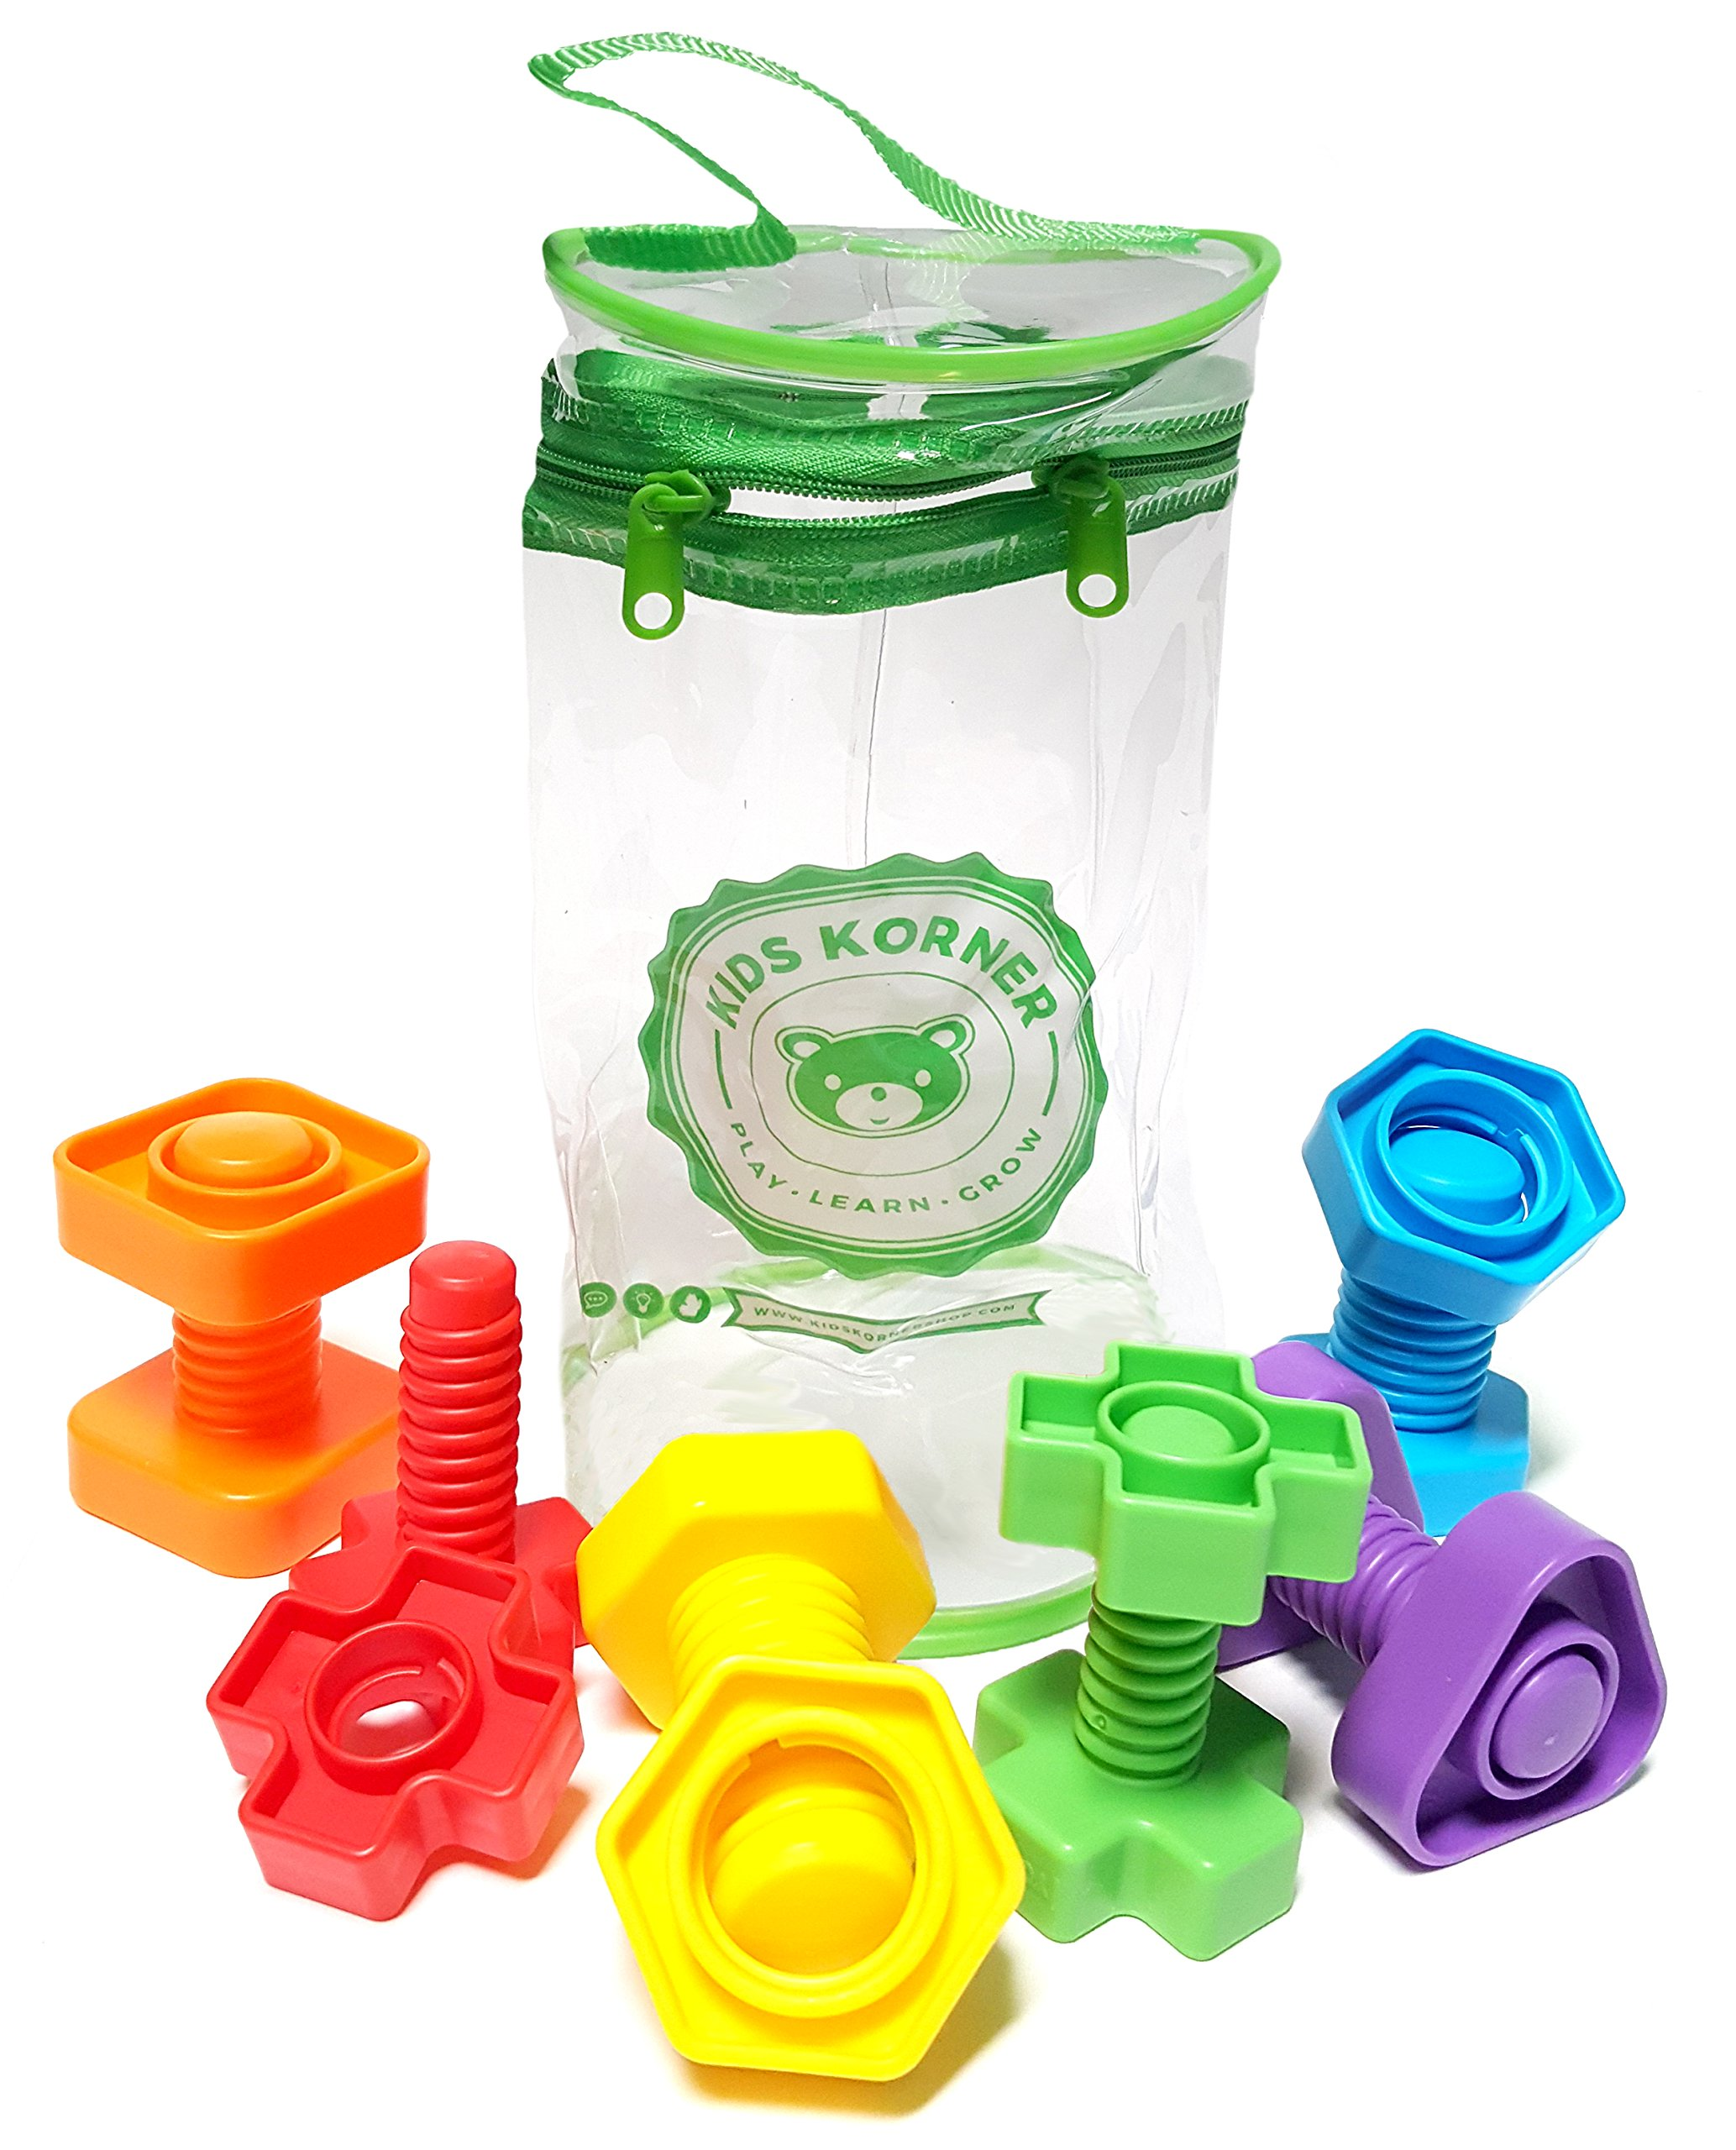 Jumbo Nuts and Bolts For Toddlers - Fine Motor Skills Rainbow Matching Game Montessori Toys For 1 2 3 Year Old Boys and Girls   12 pc Occupational Therapy Educational Toys with Toy Storage + eBook